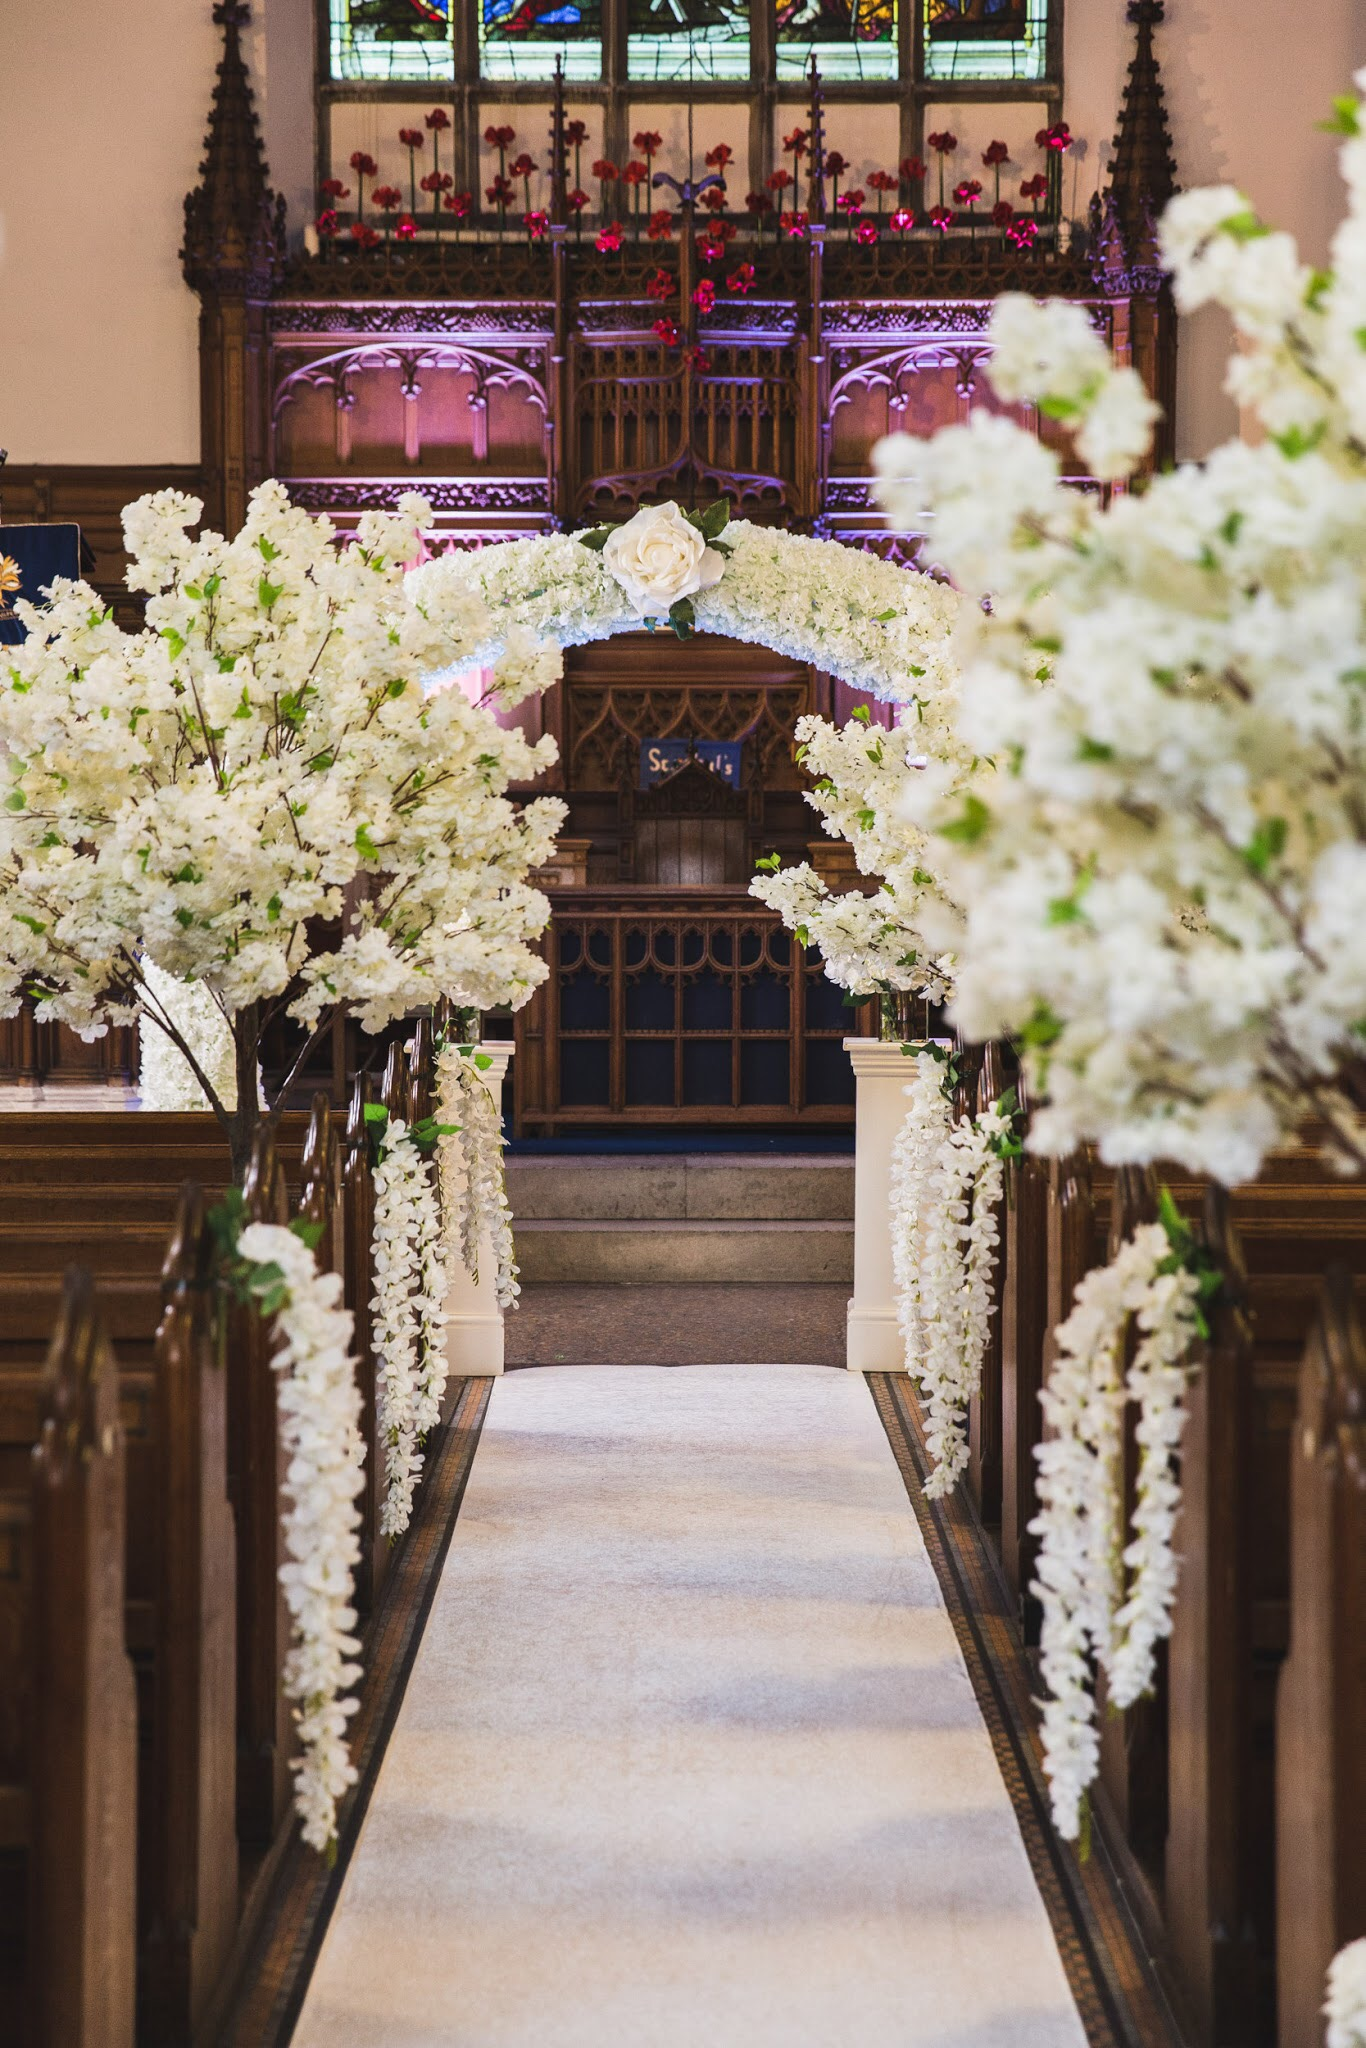 Wedding Tree Hire  Beyond Expectations Weddings  Events